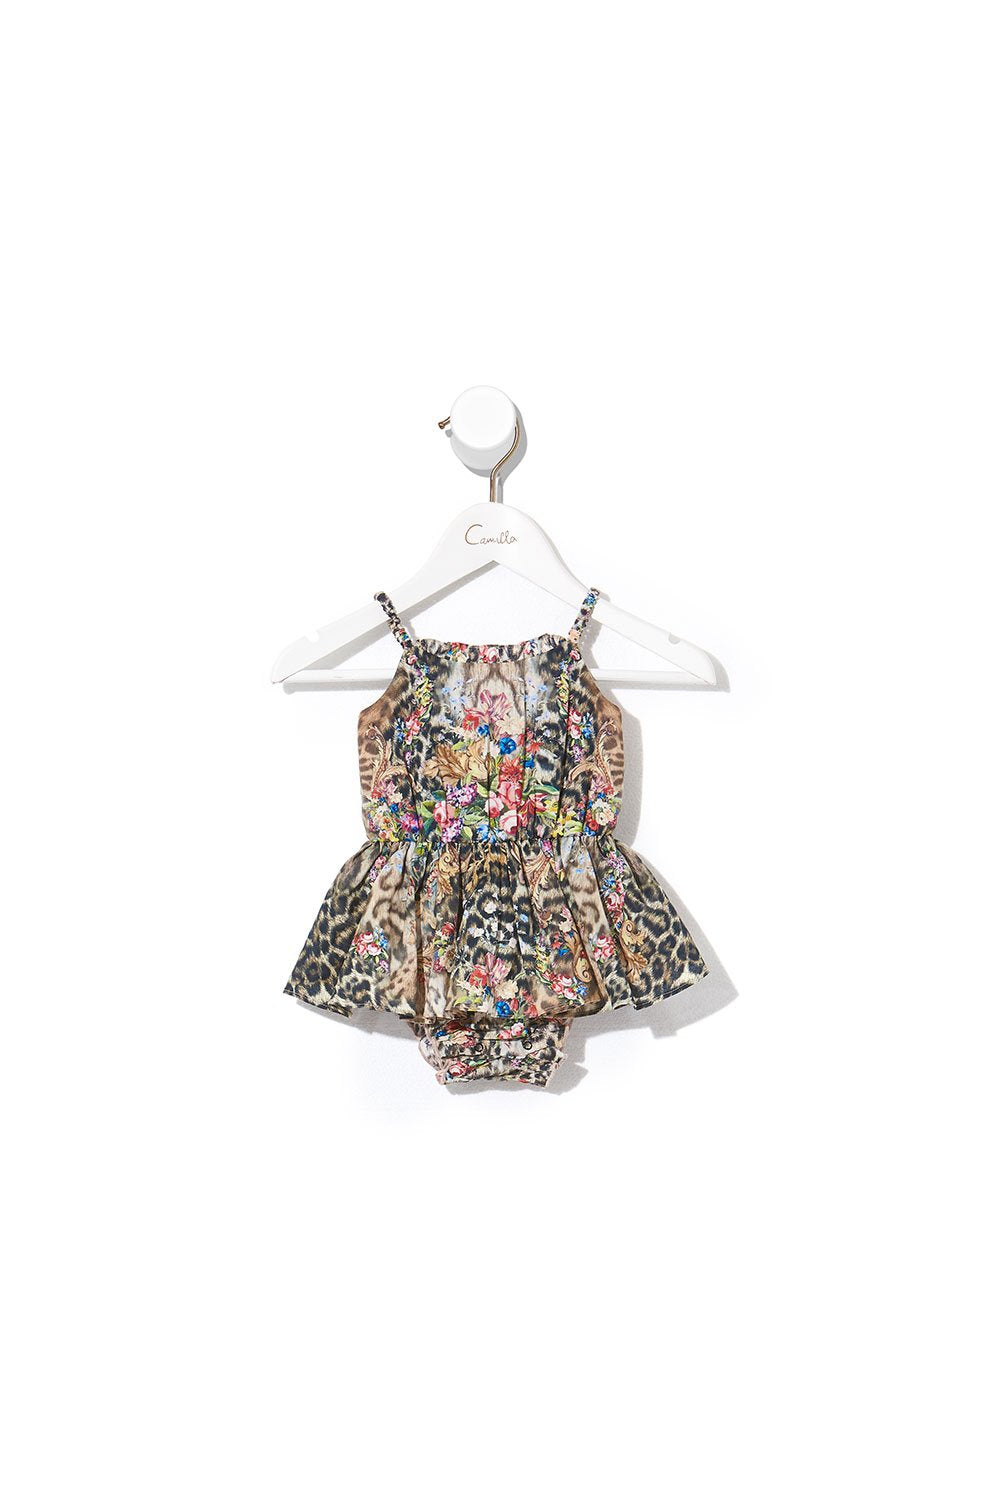 BABIES JUMP DRESS OH CECILE